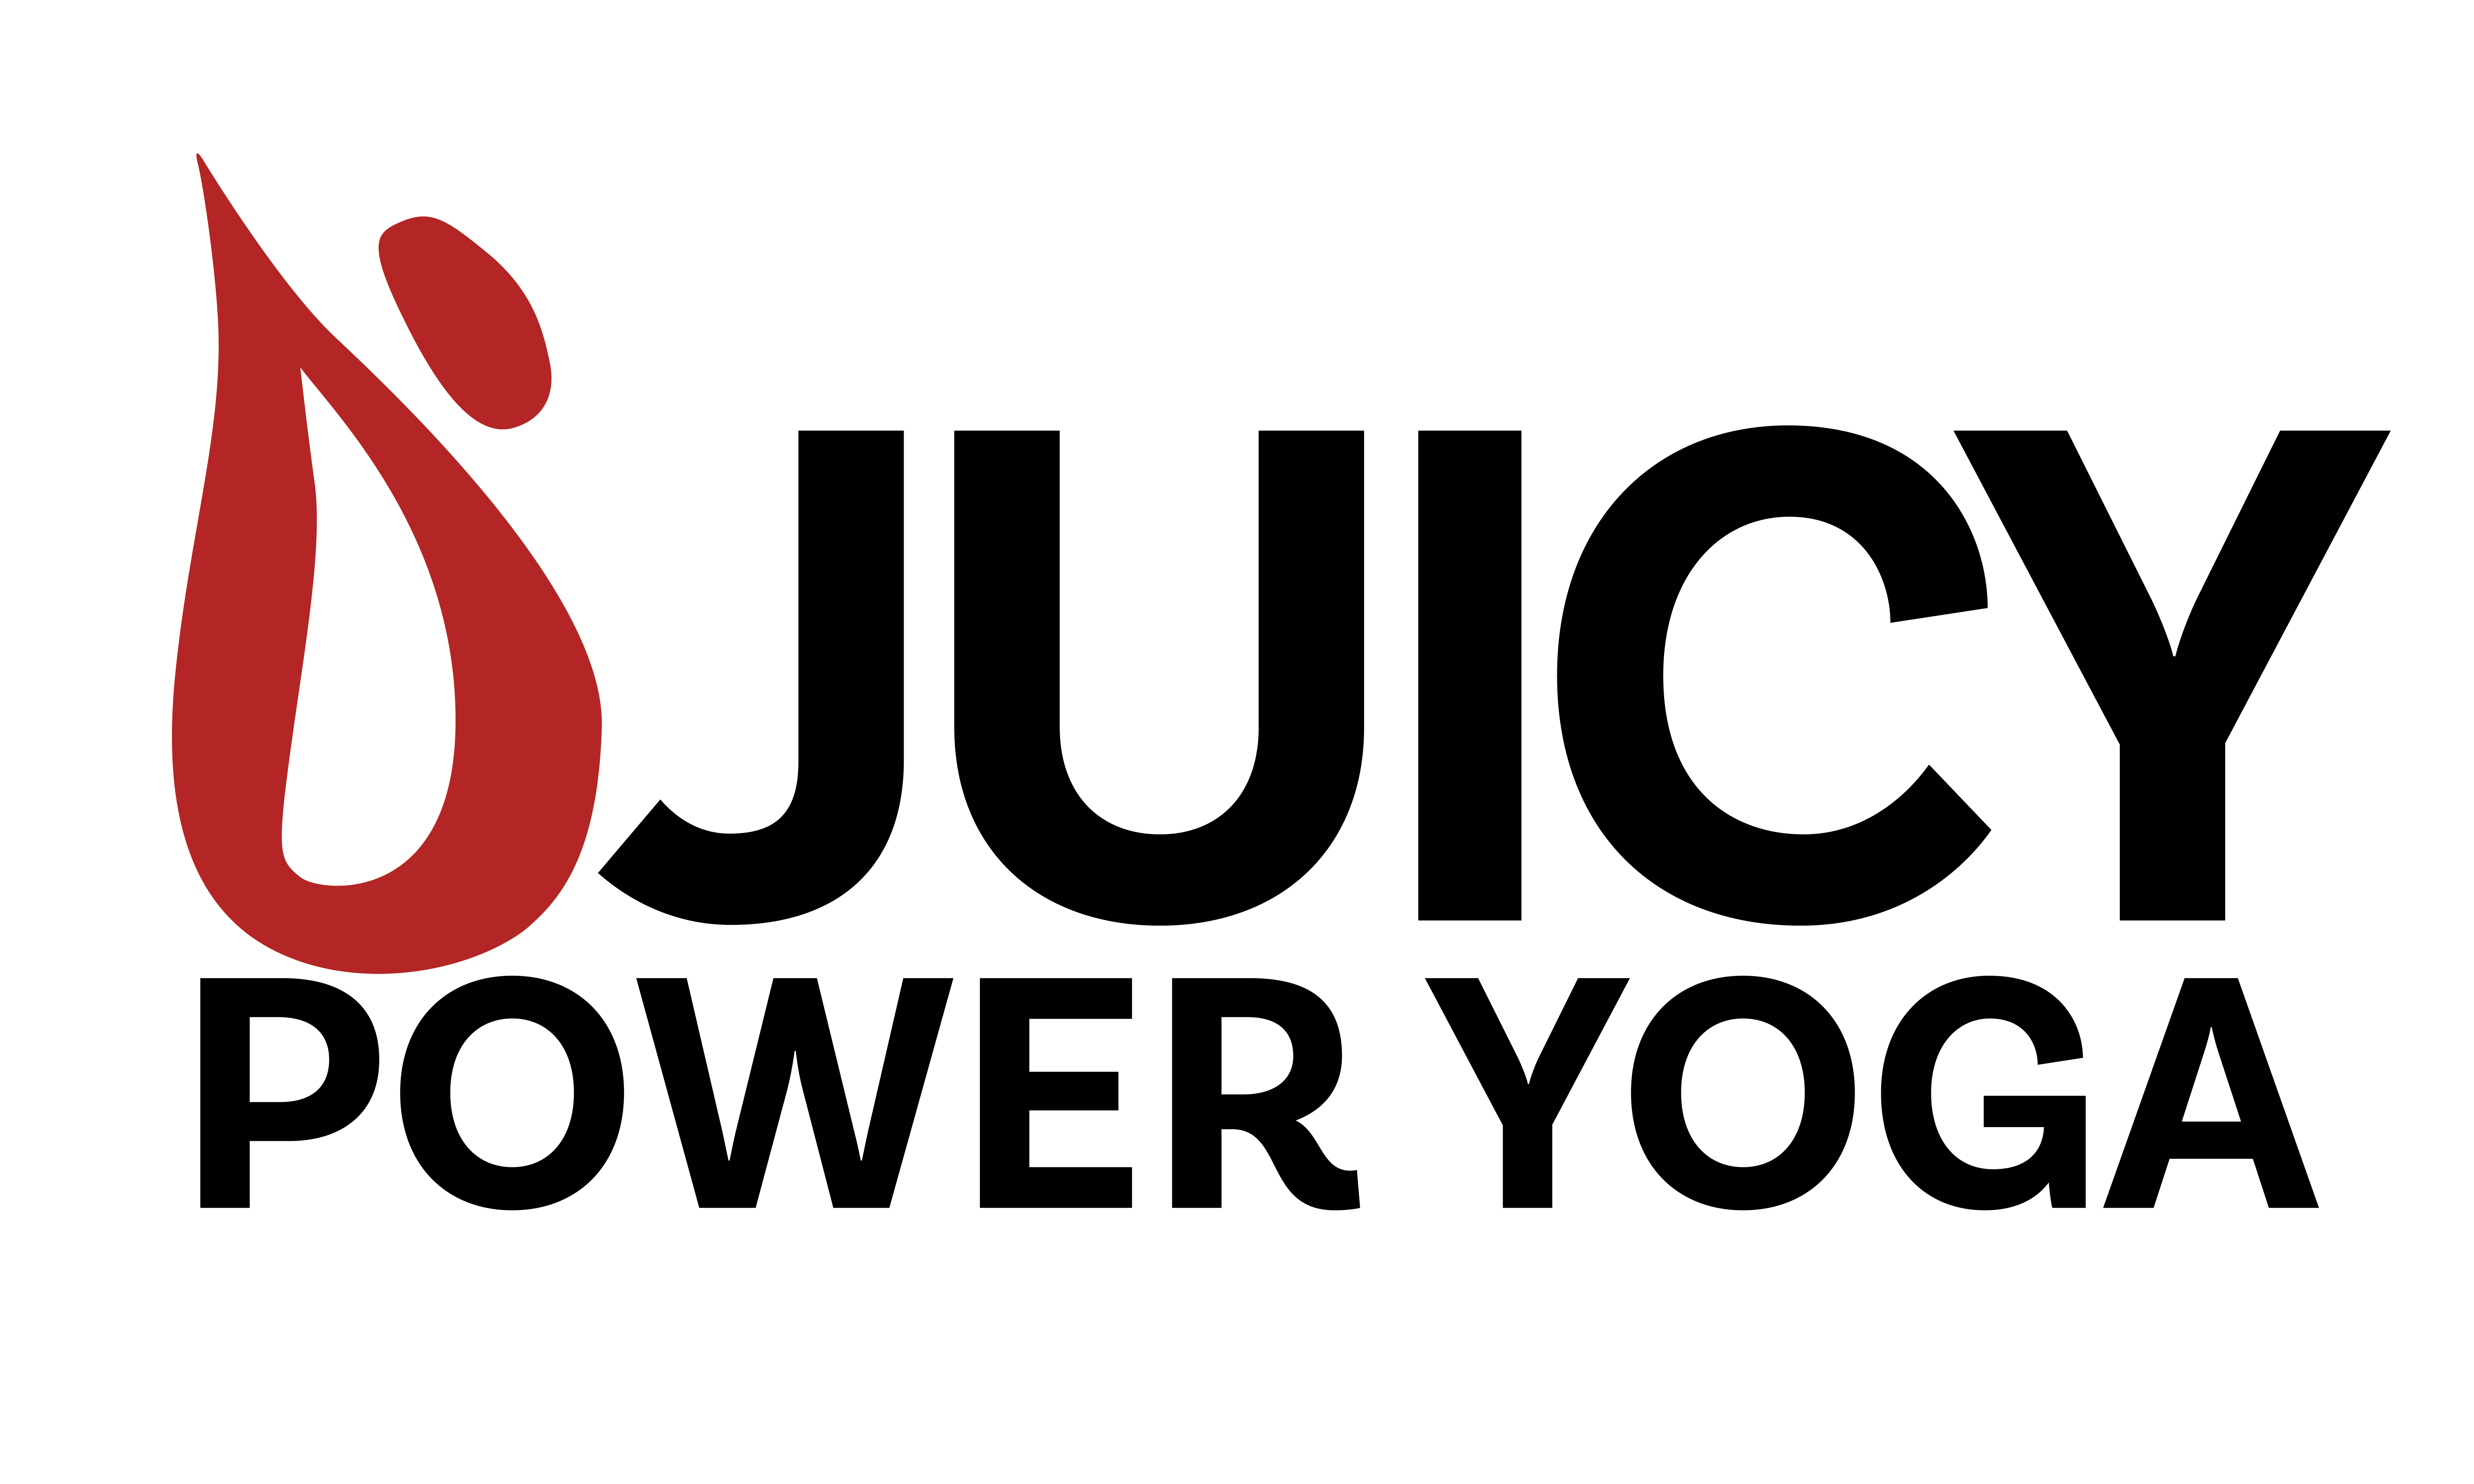 Juicy Power Yoga